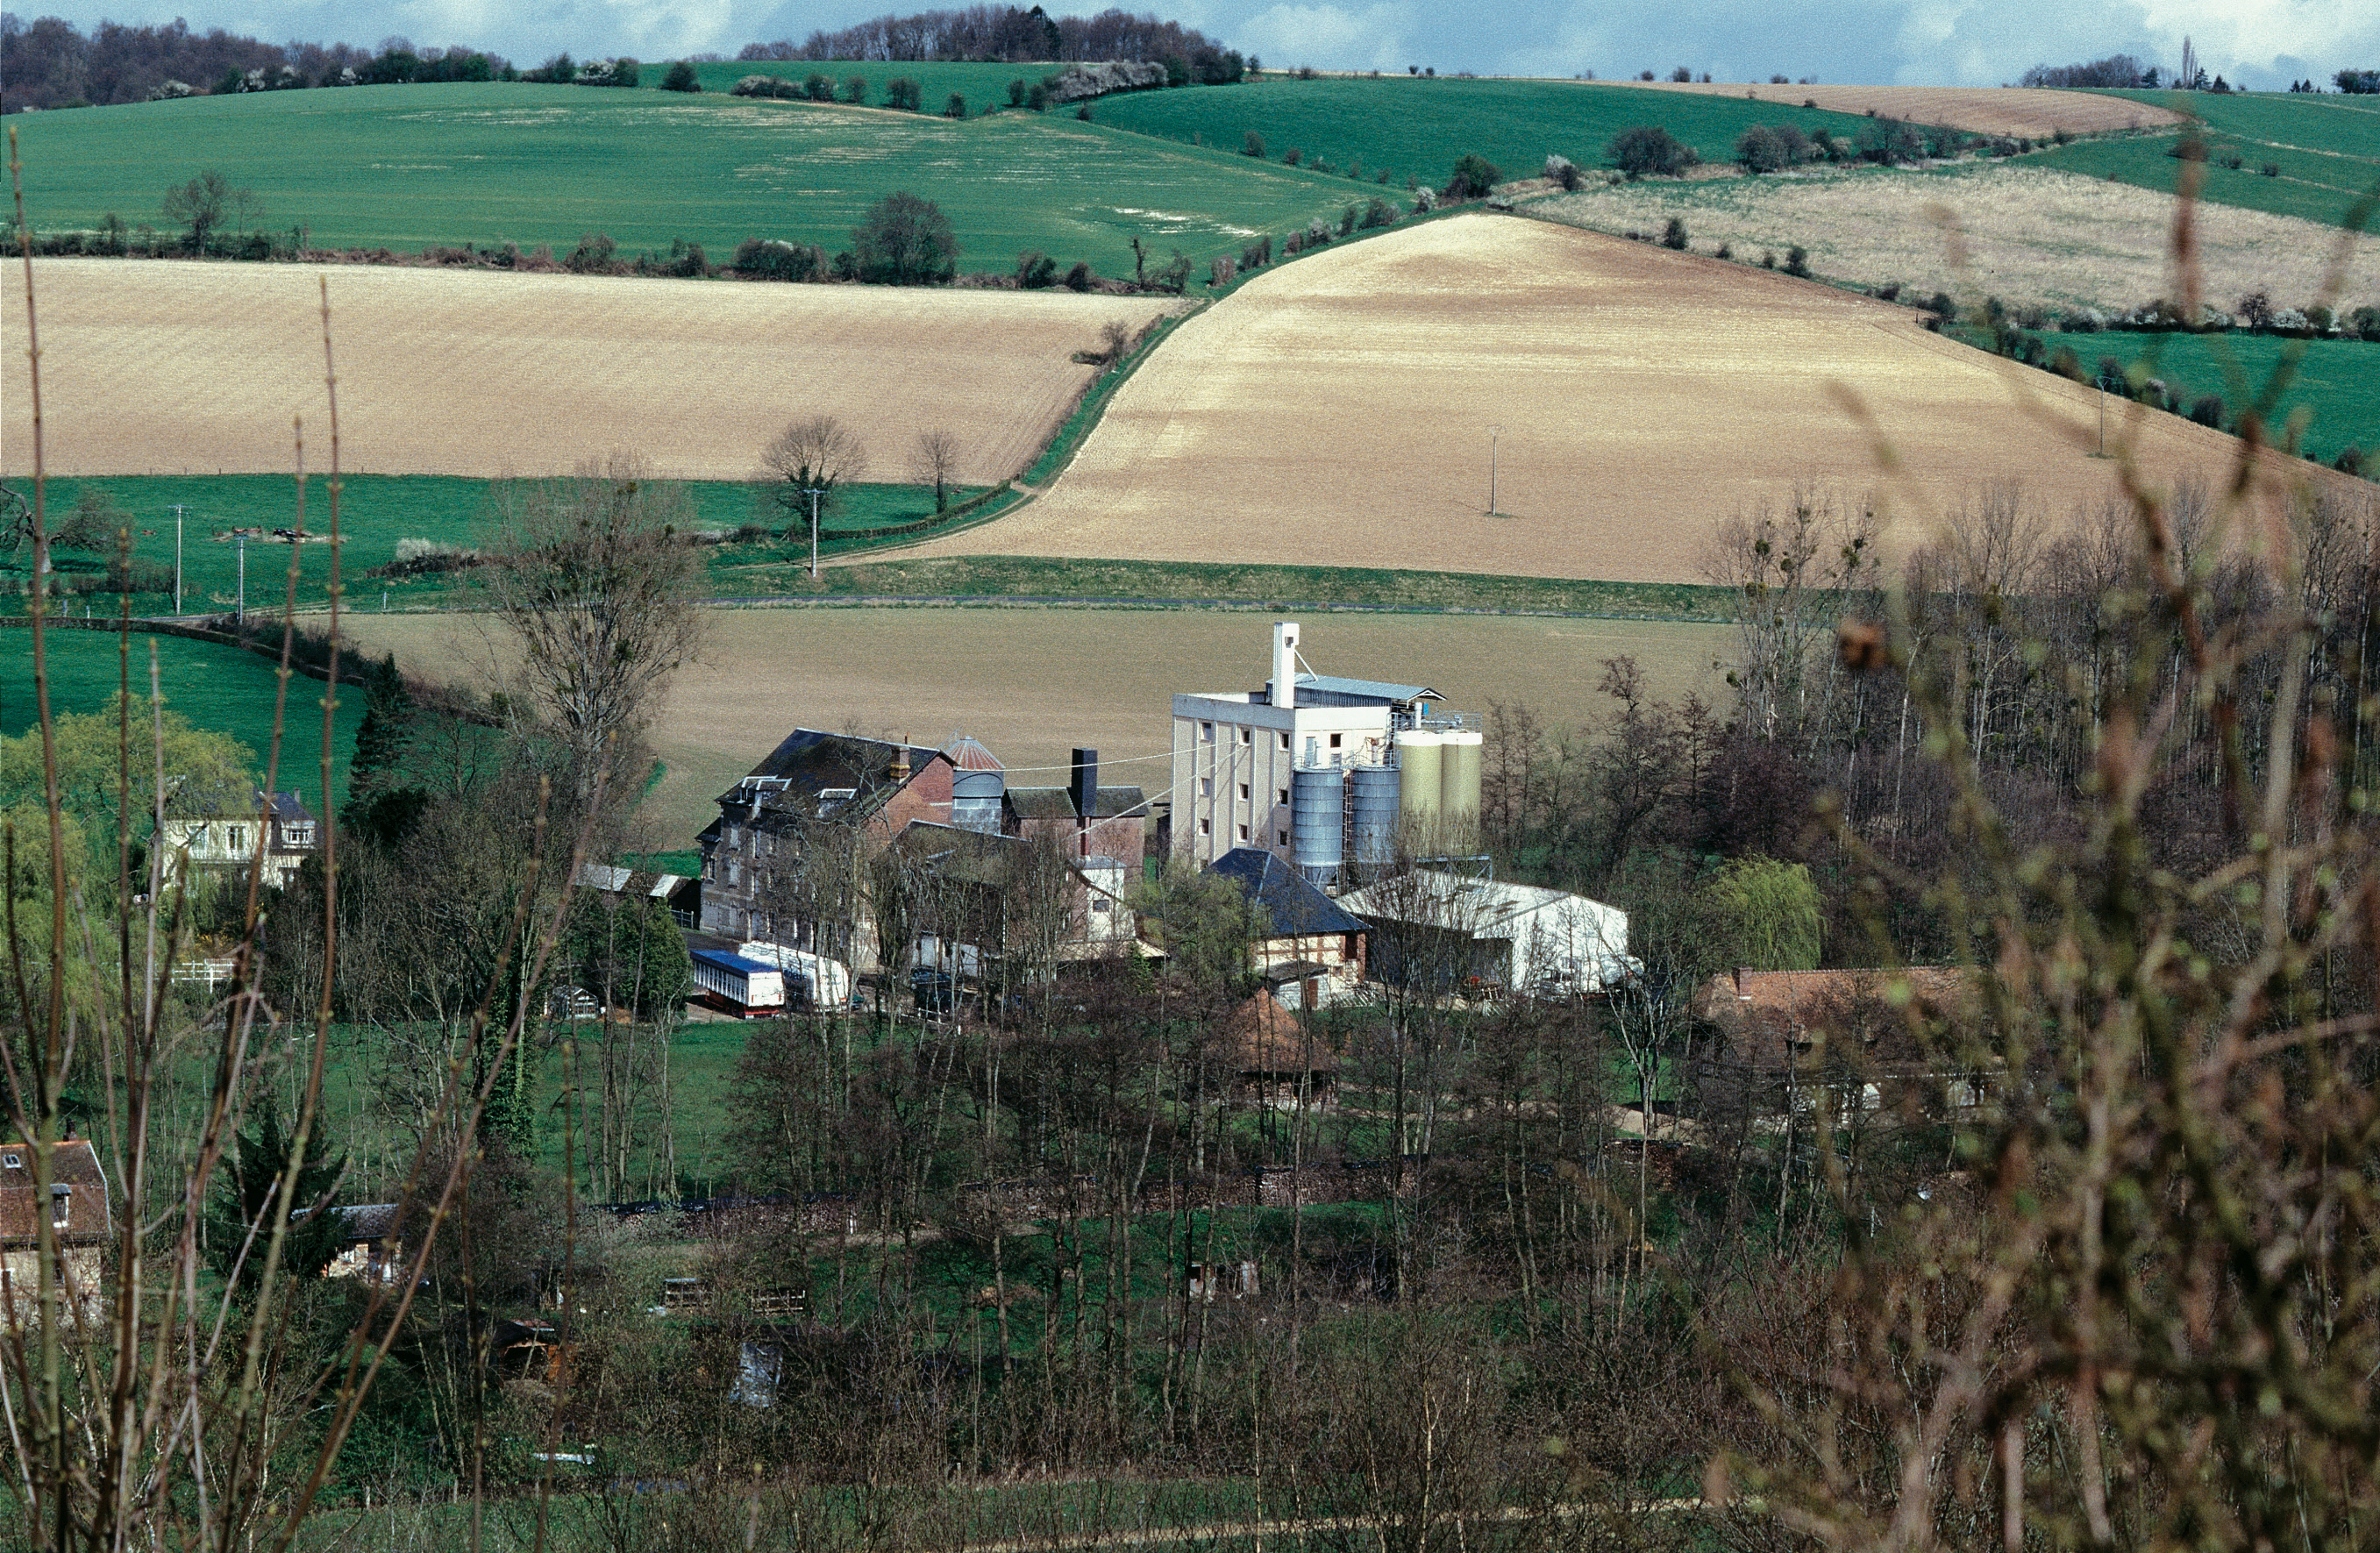 Vue d'un moulin